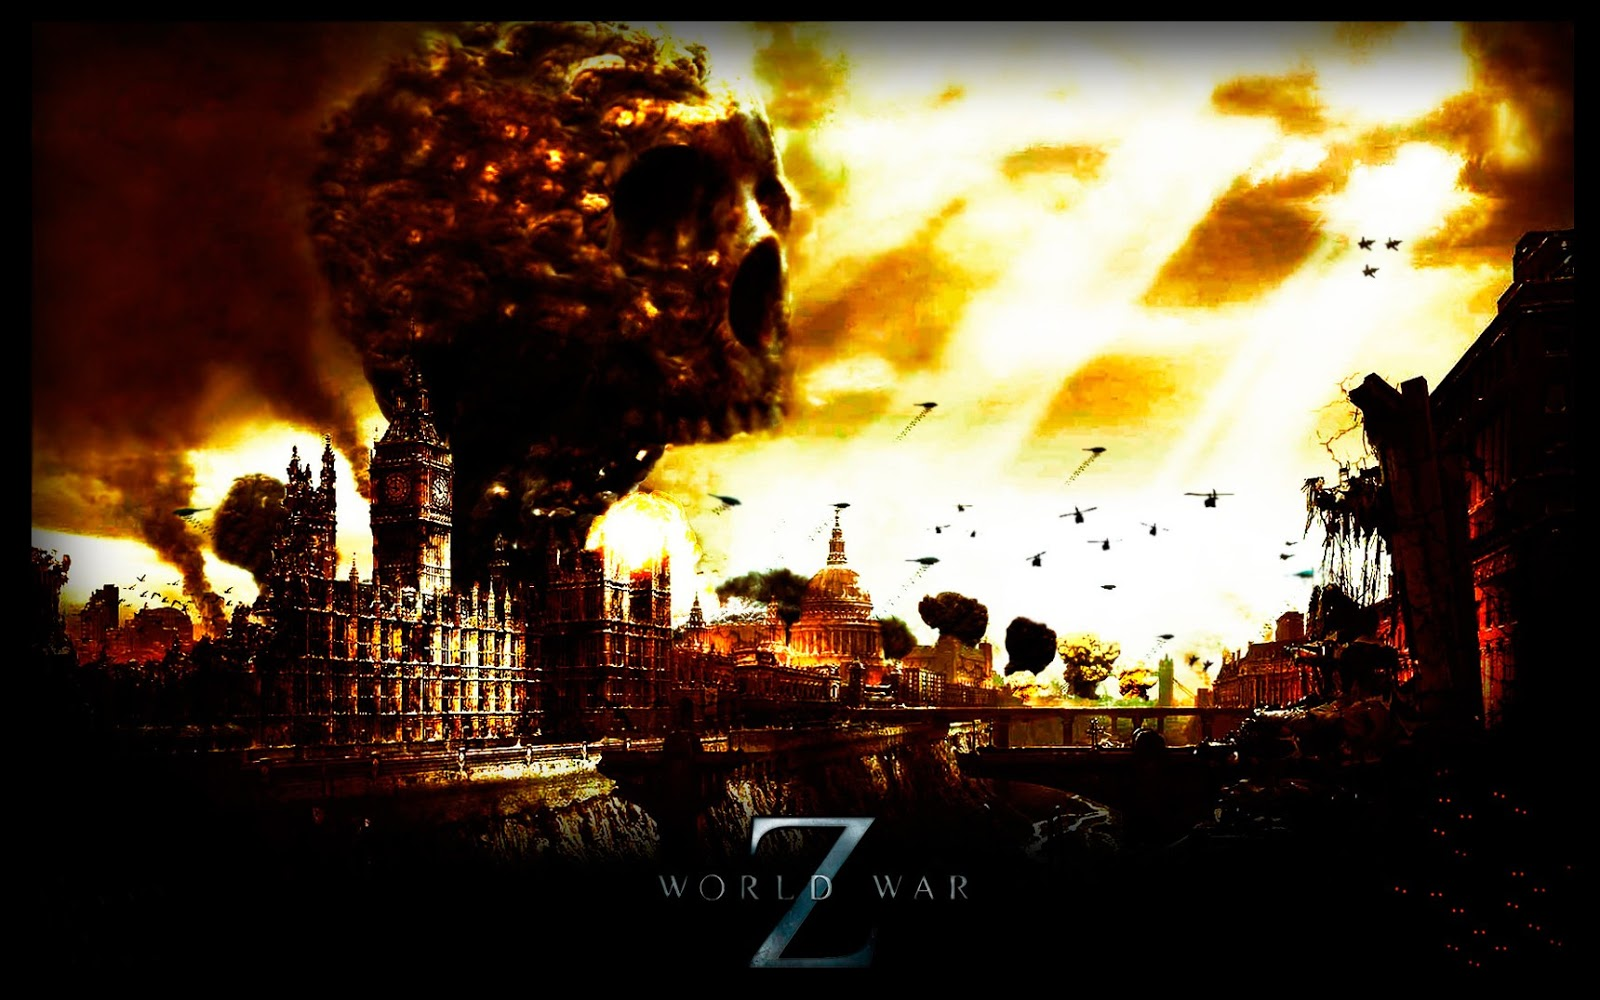 World War Z Wallpapers [1280x1024] Free Wallpapers